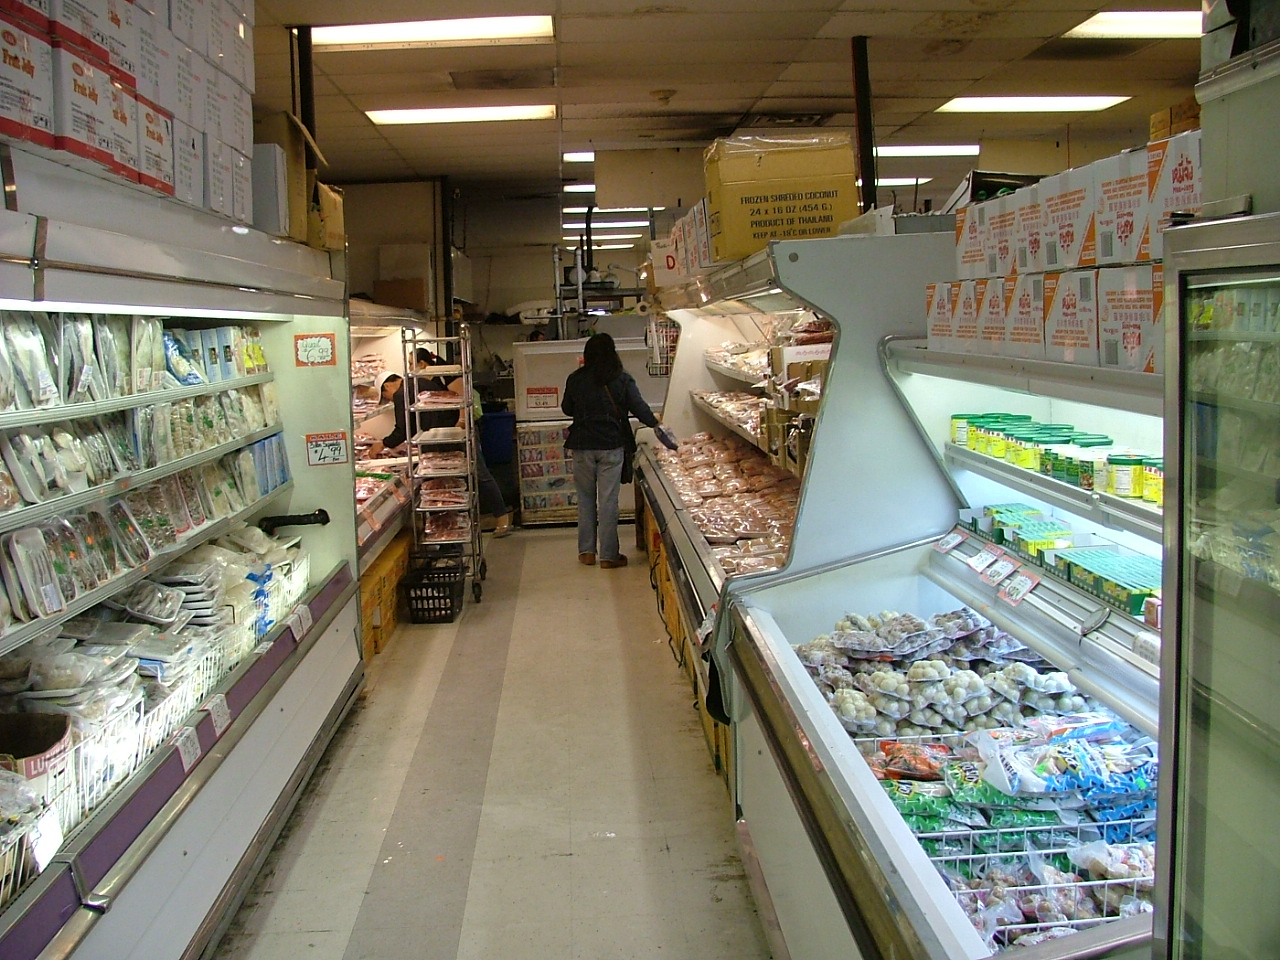 Fresh meats and vegggies in a typically clean aisle